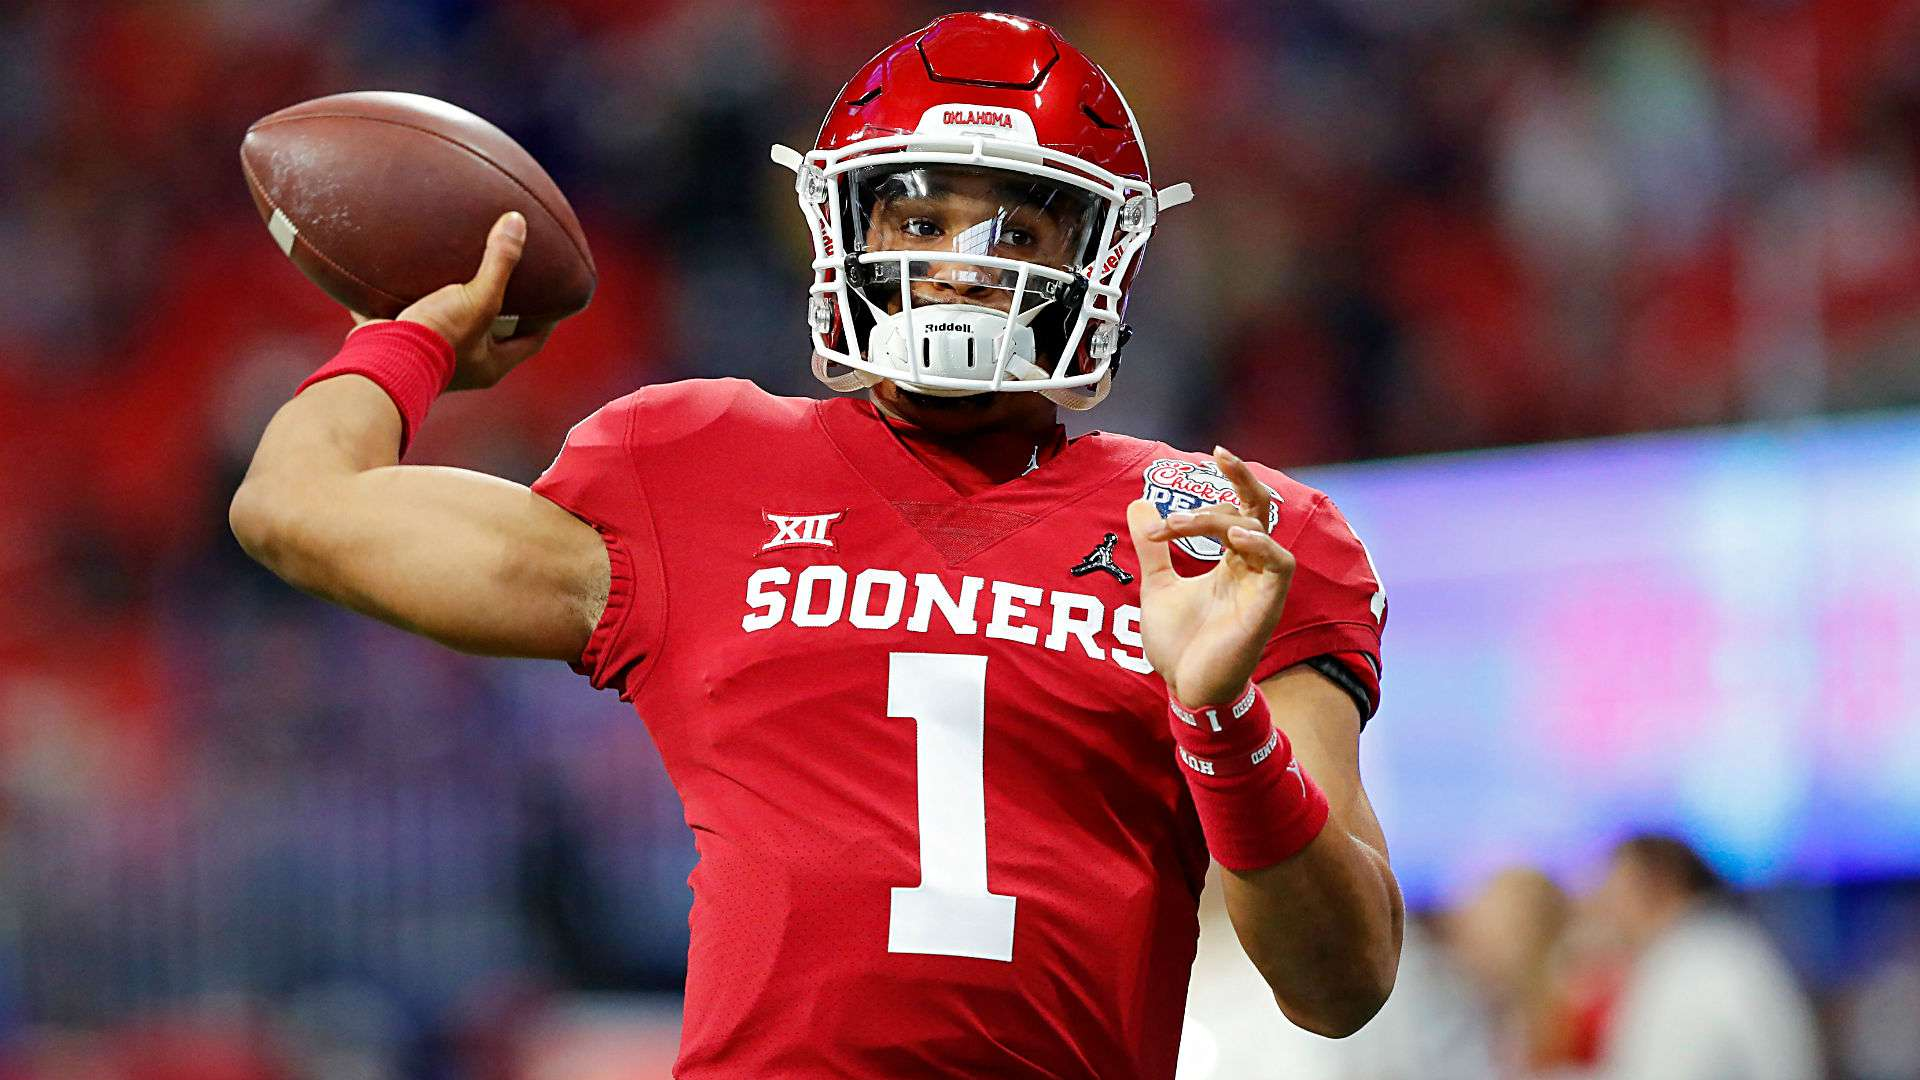 NFL Draft 2020: The impact of Jalen Hurts in Philadelphia